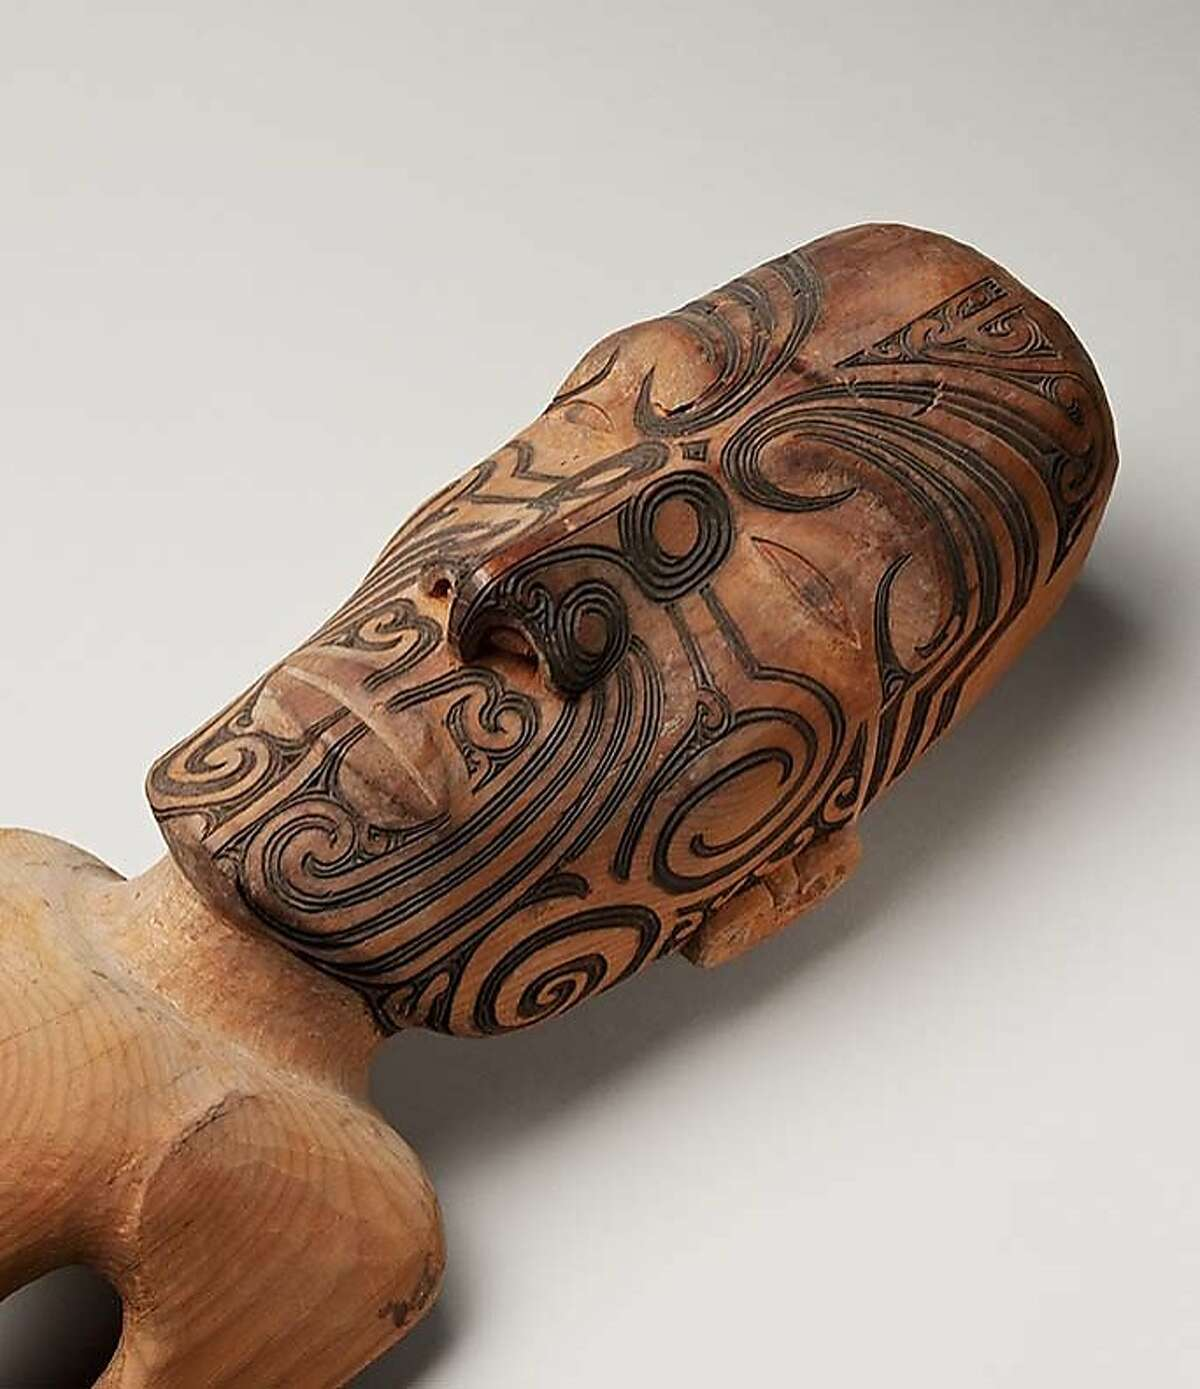 This Maori tekoteko, a carving that represents a chiefly ancestor and was once atop a traditional meetinghouse, will be on display in the Bishop Museum's newly renovated Pacific Hall, reopening Sept. 21.